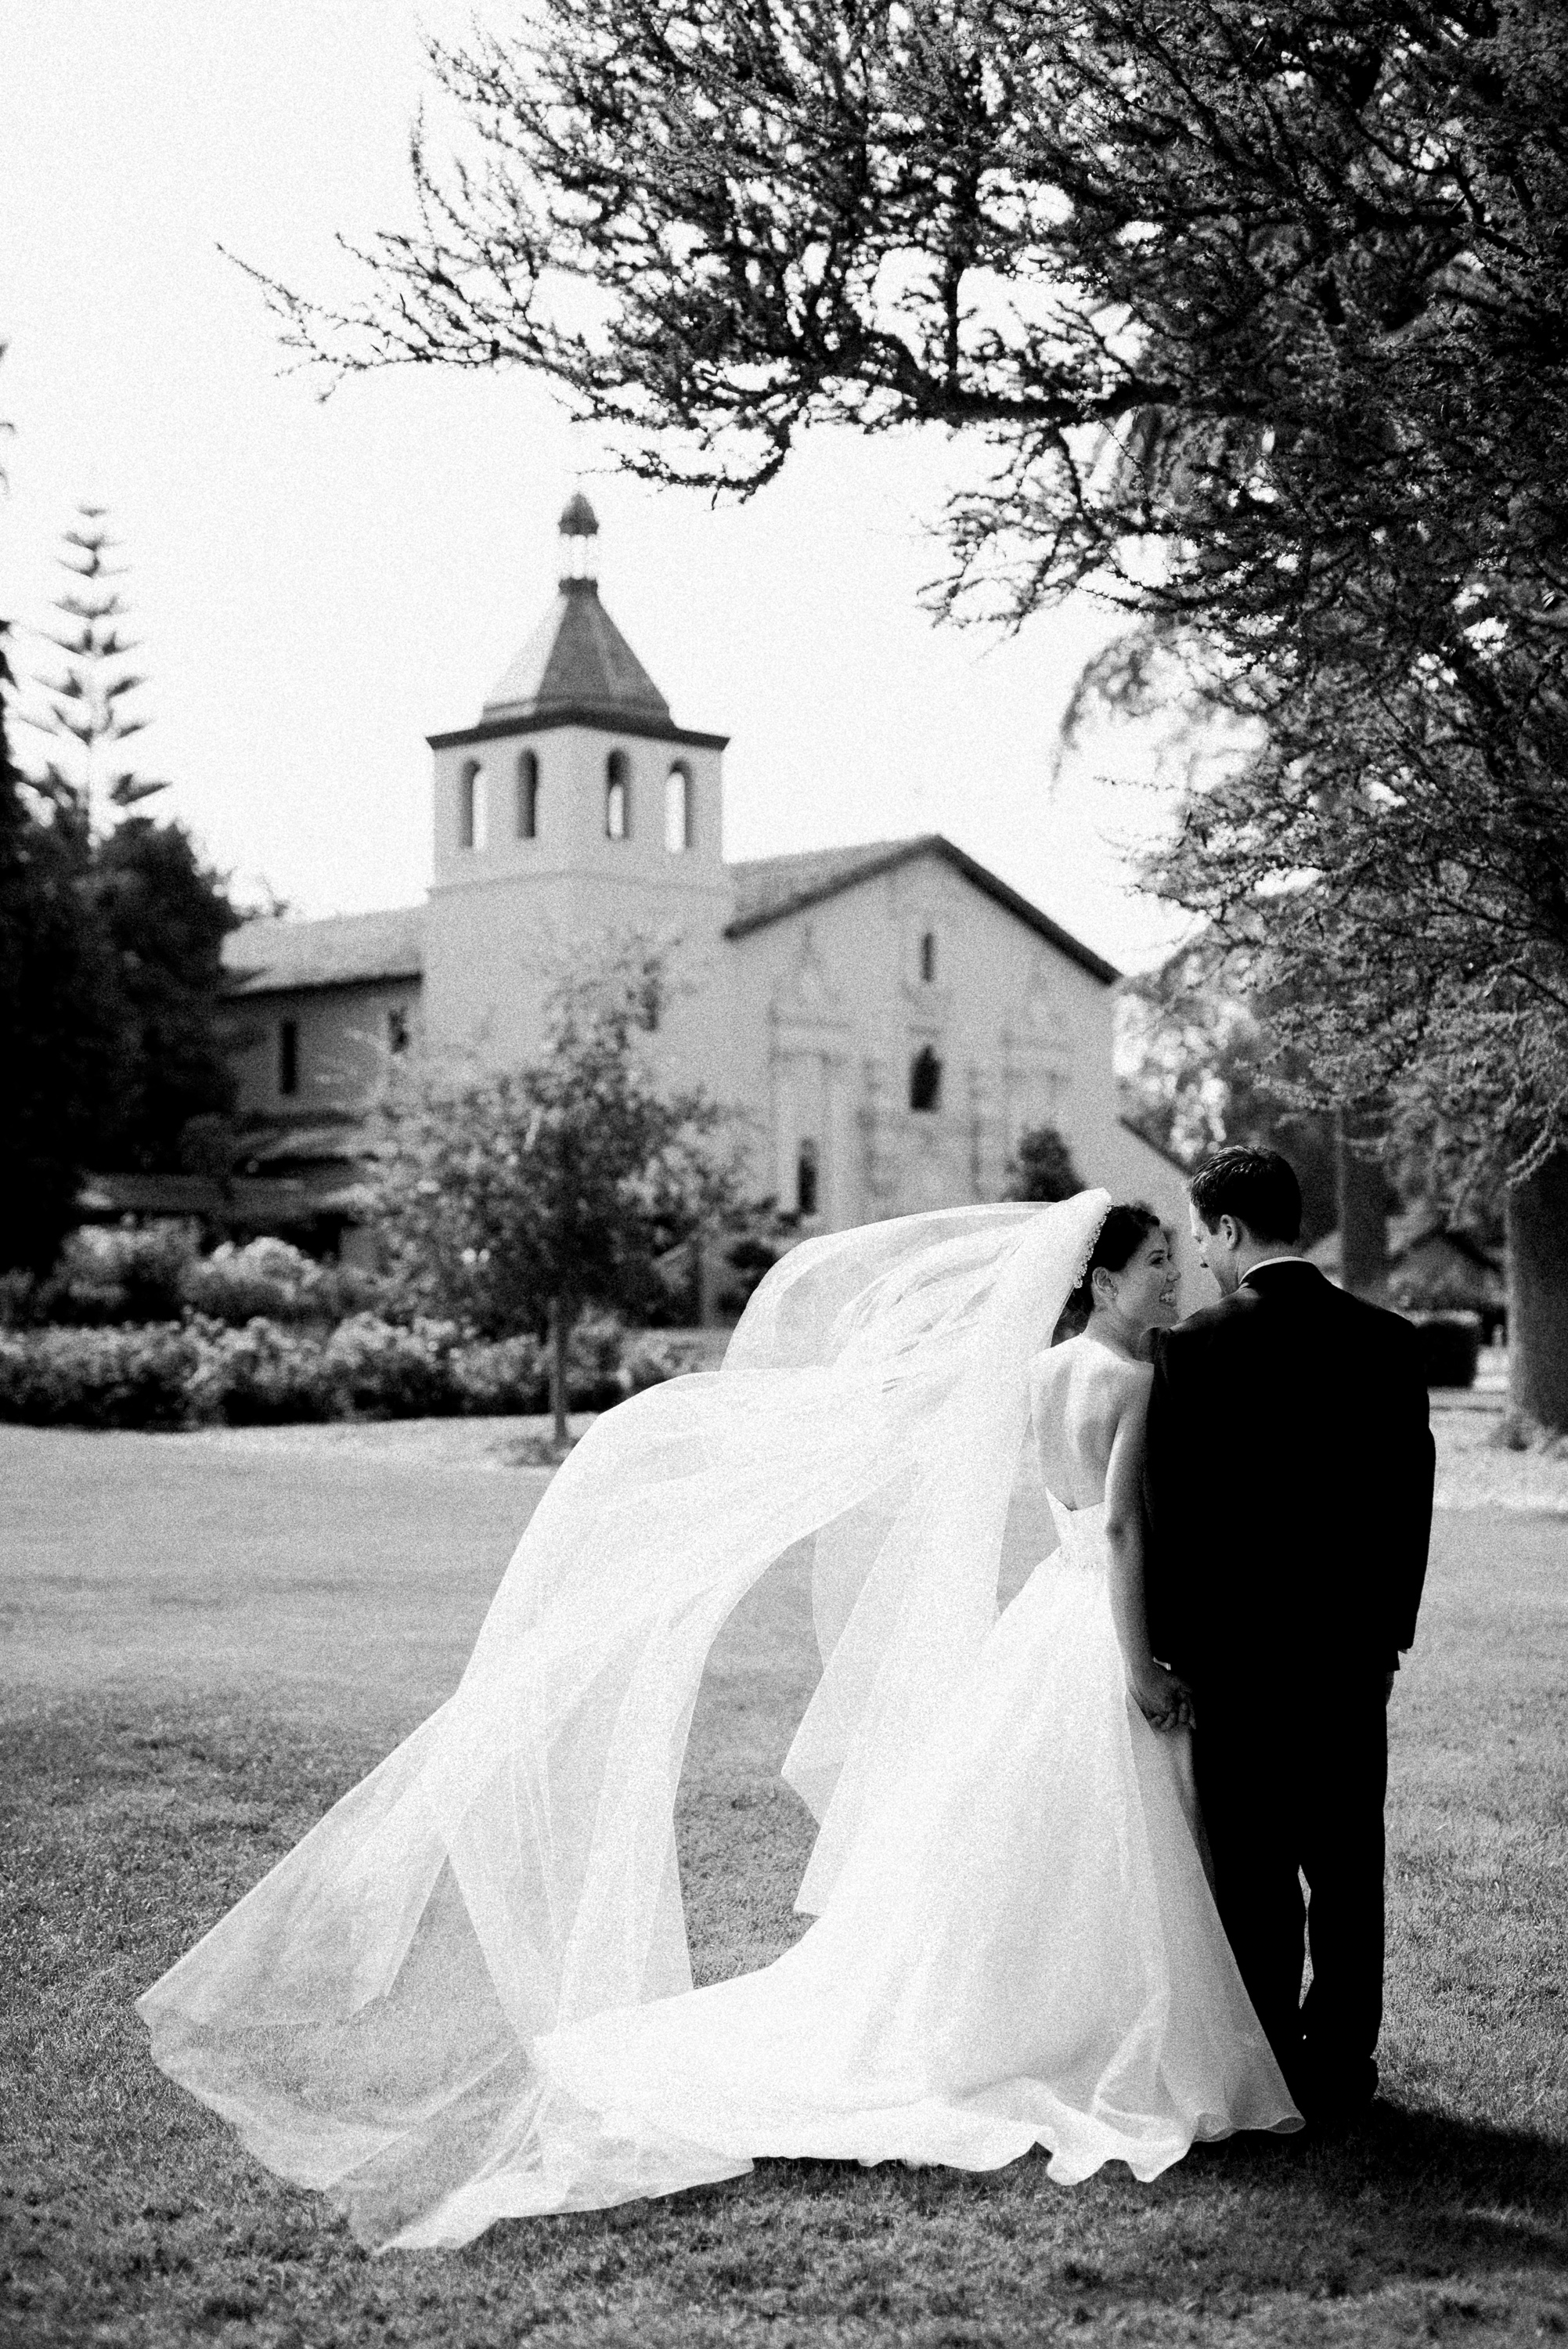 Bride and groom wedding portrait at Mission Santa Clara University